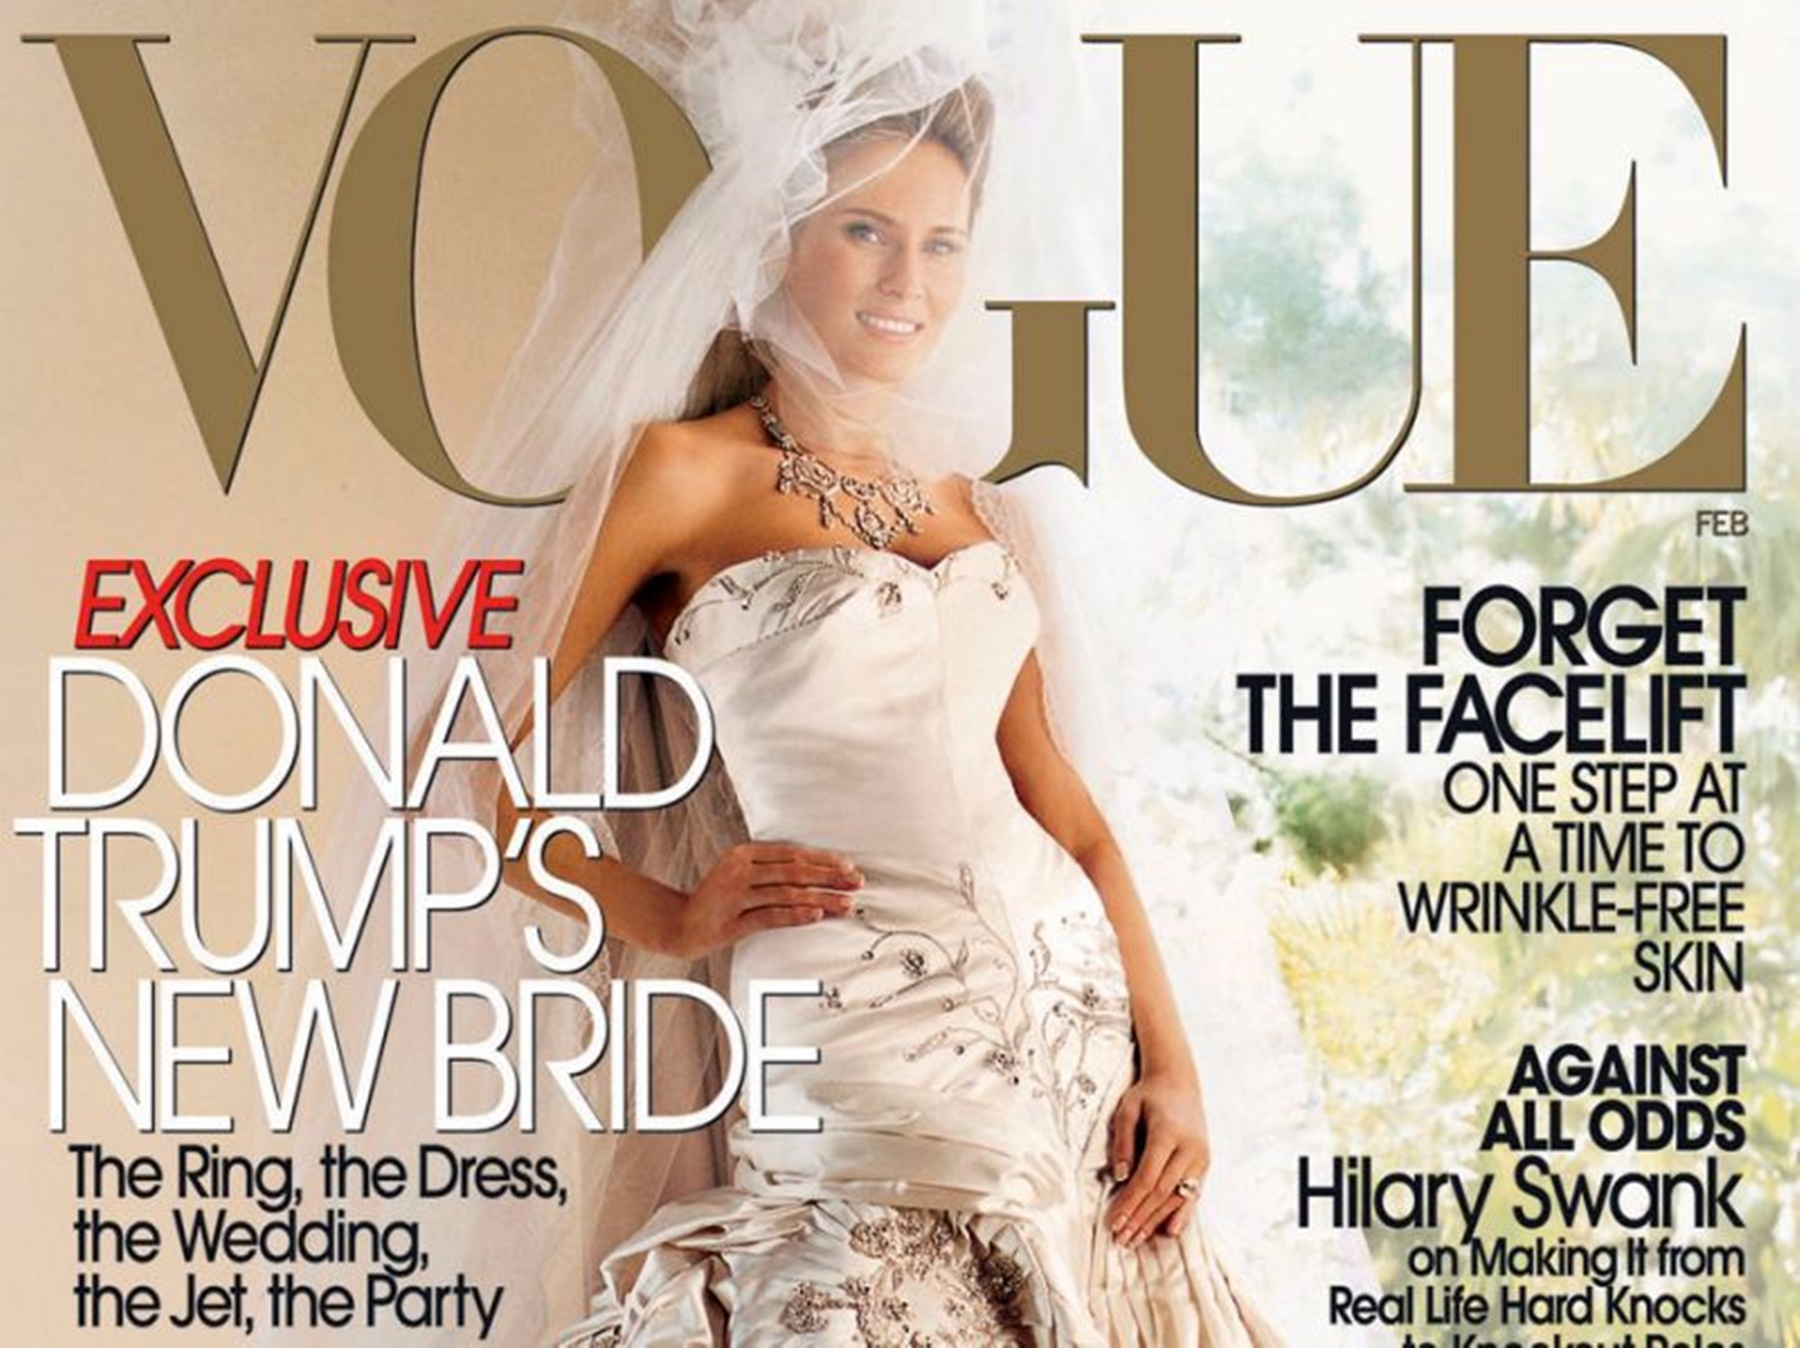 melania-trump-has-more-important-things-in-her-life-than-being-the-vogue-of-cover-flotus-hits-back-after-anna-wintour-suggested-that-she-lacked-core-on-the-issues